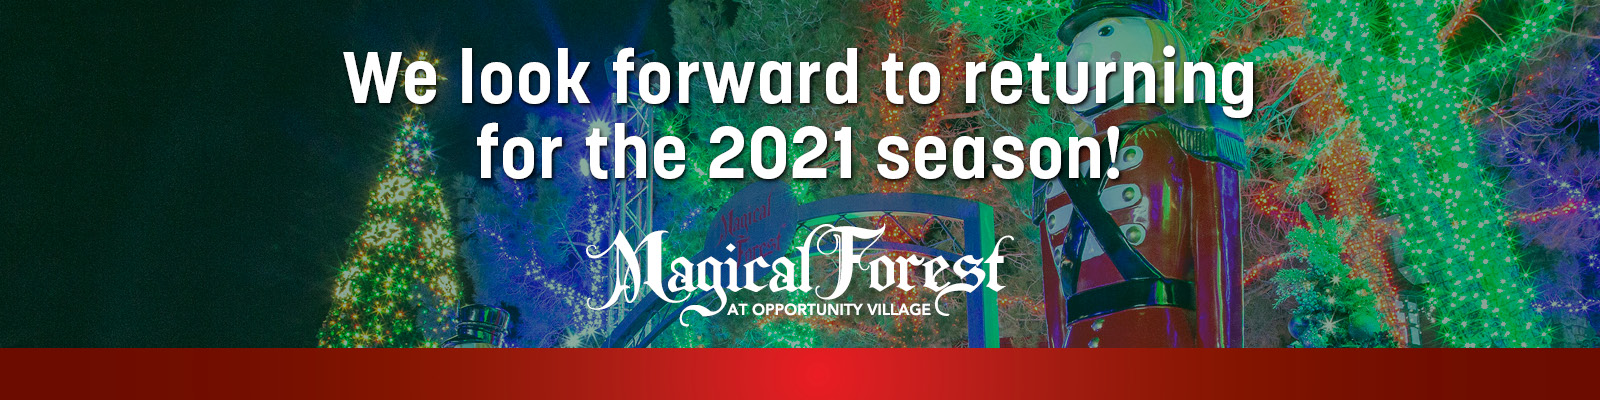 Magical Forest header 2020 canceled event